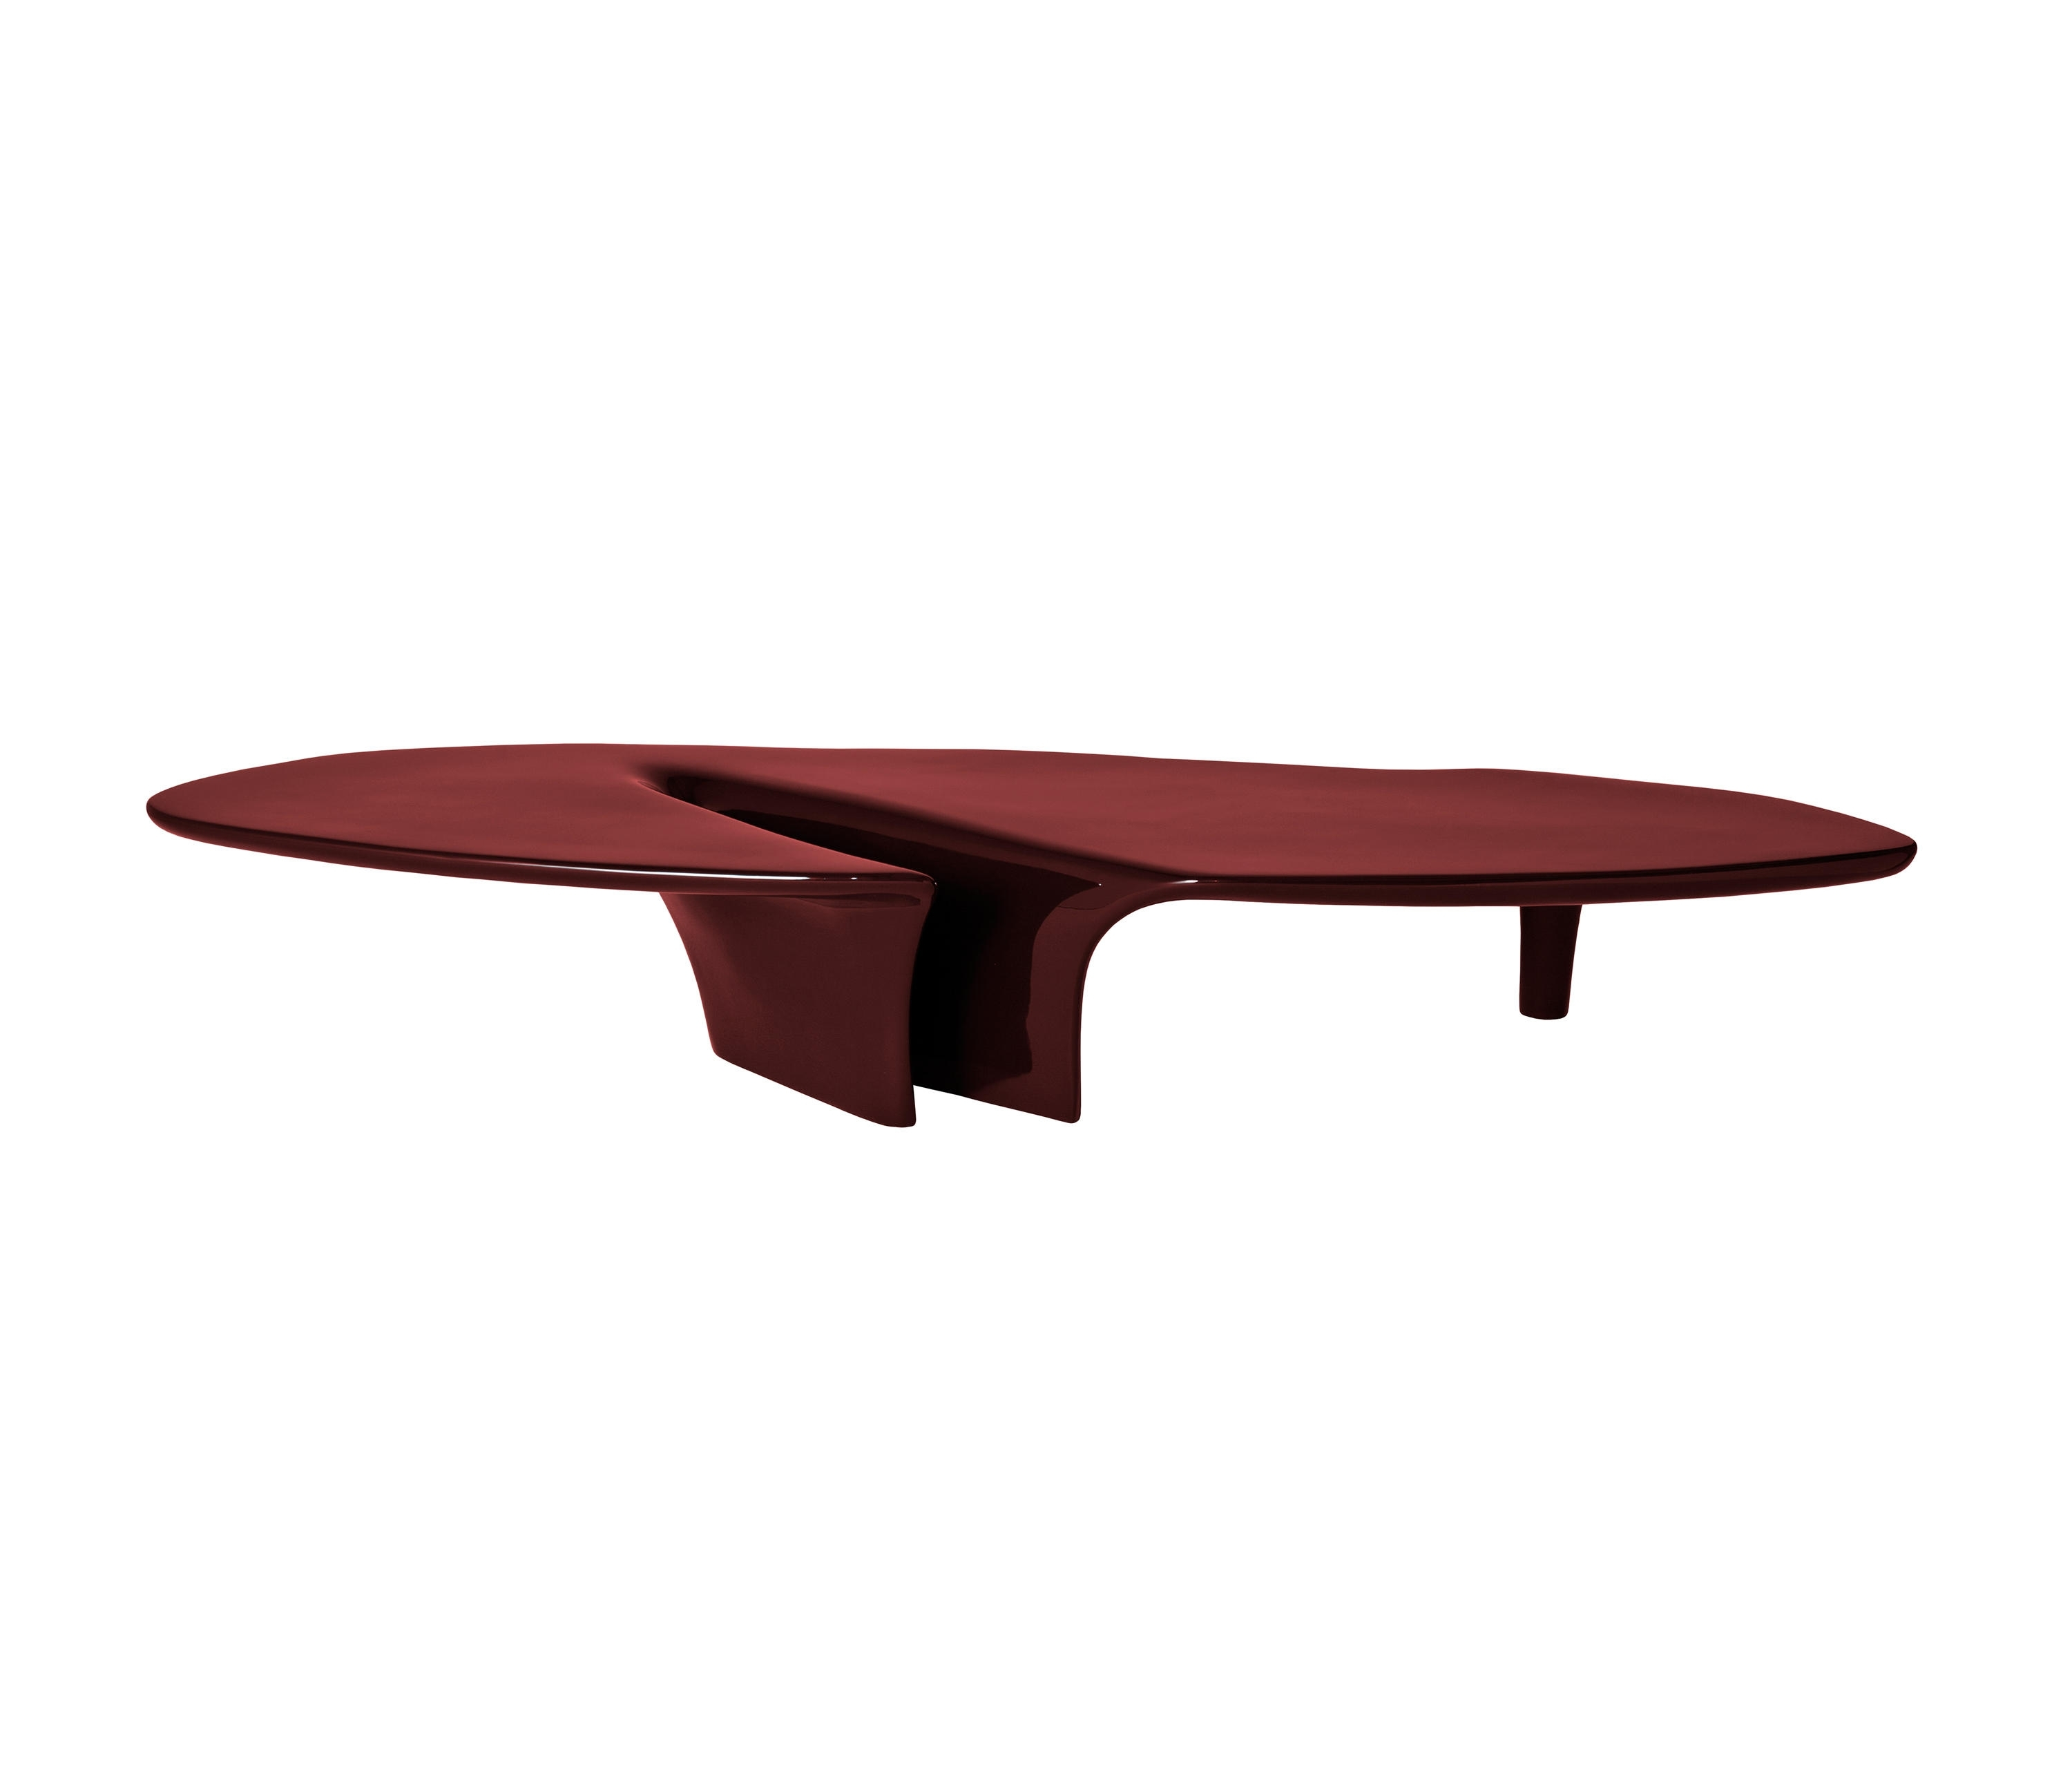 Waterfall Coffee Table   Coffee Tables From Driade | Architonic For Waterfall Coffee Tables (Photo 12 of 30)